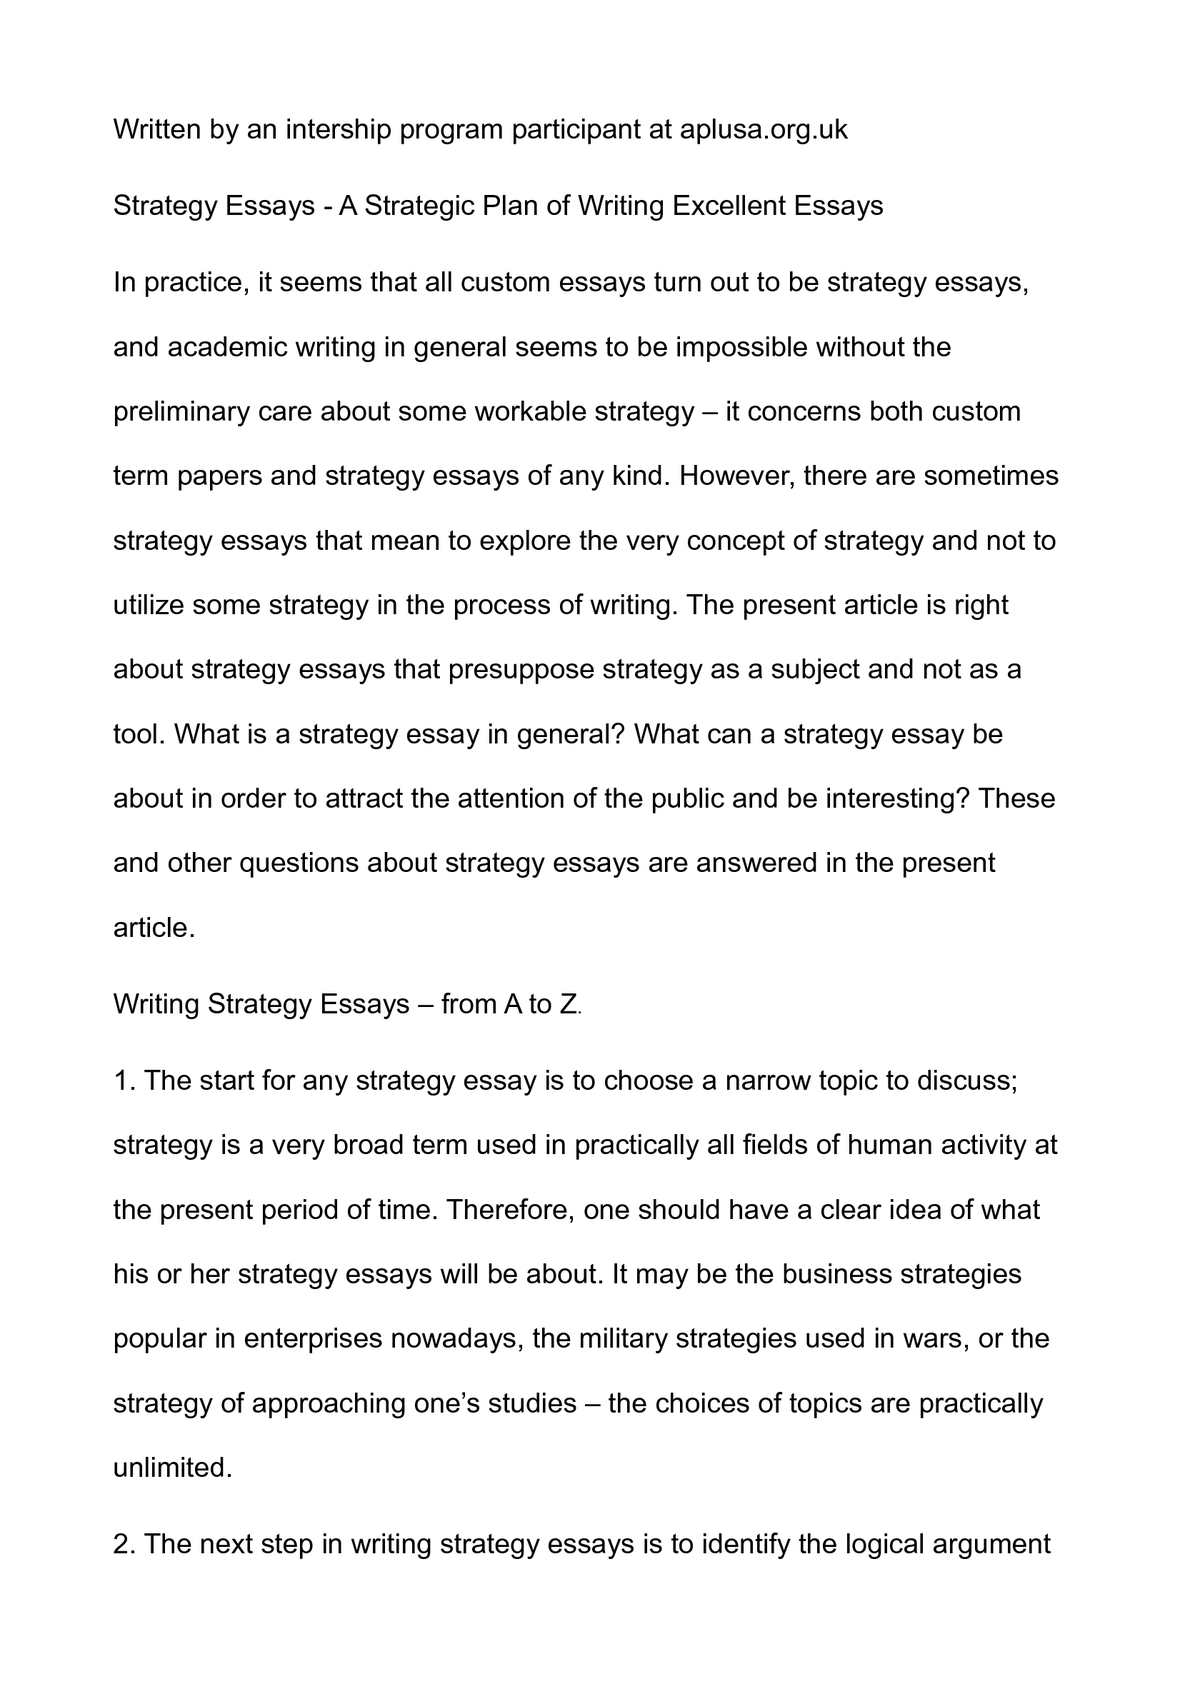 Essay Papers Online  Samples Of Essay Writing In English also Essay For English Language Calamo  Strategy Essays  A Strategic Plan Of Writing Excellent Essays Thesis Statement Examples For Persuasive Essays